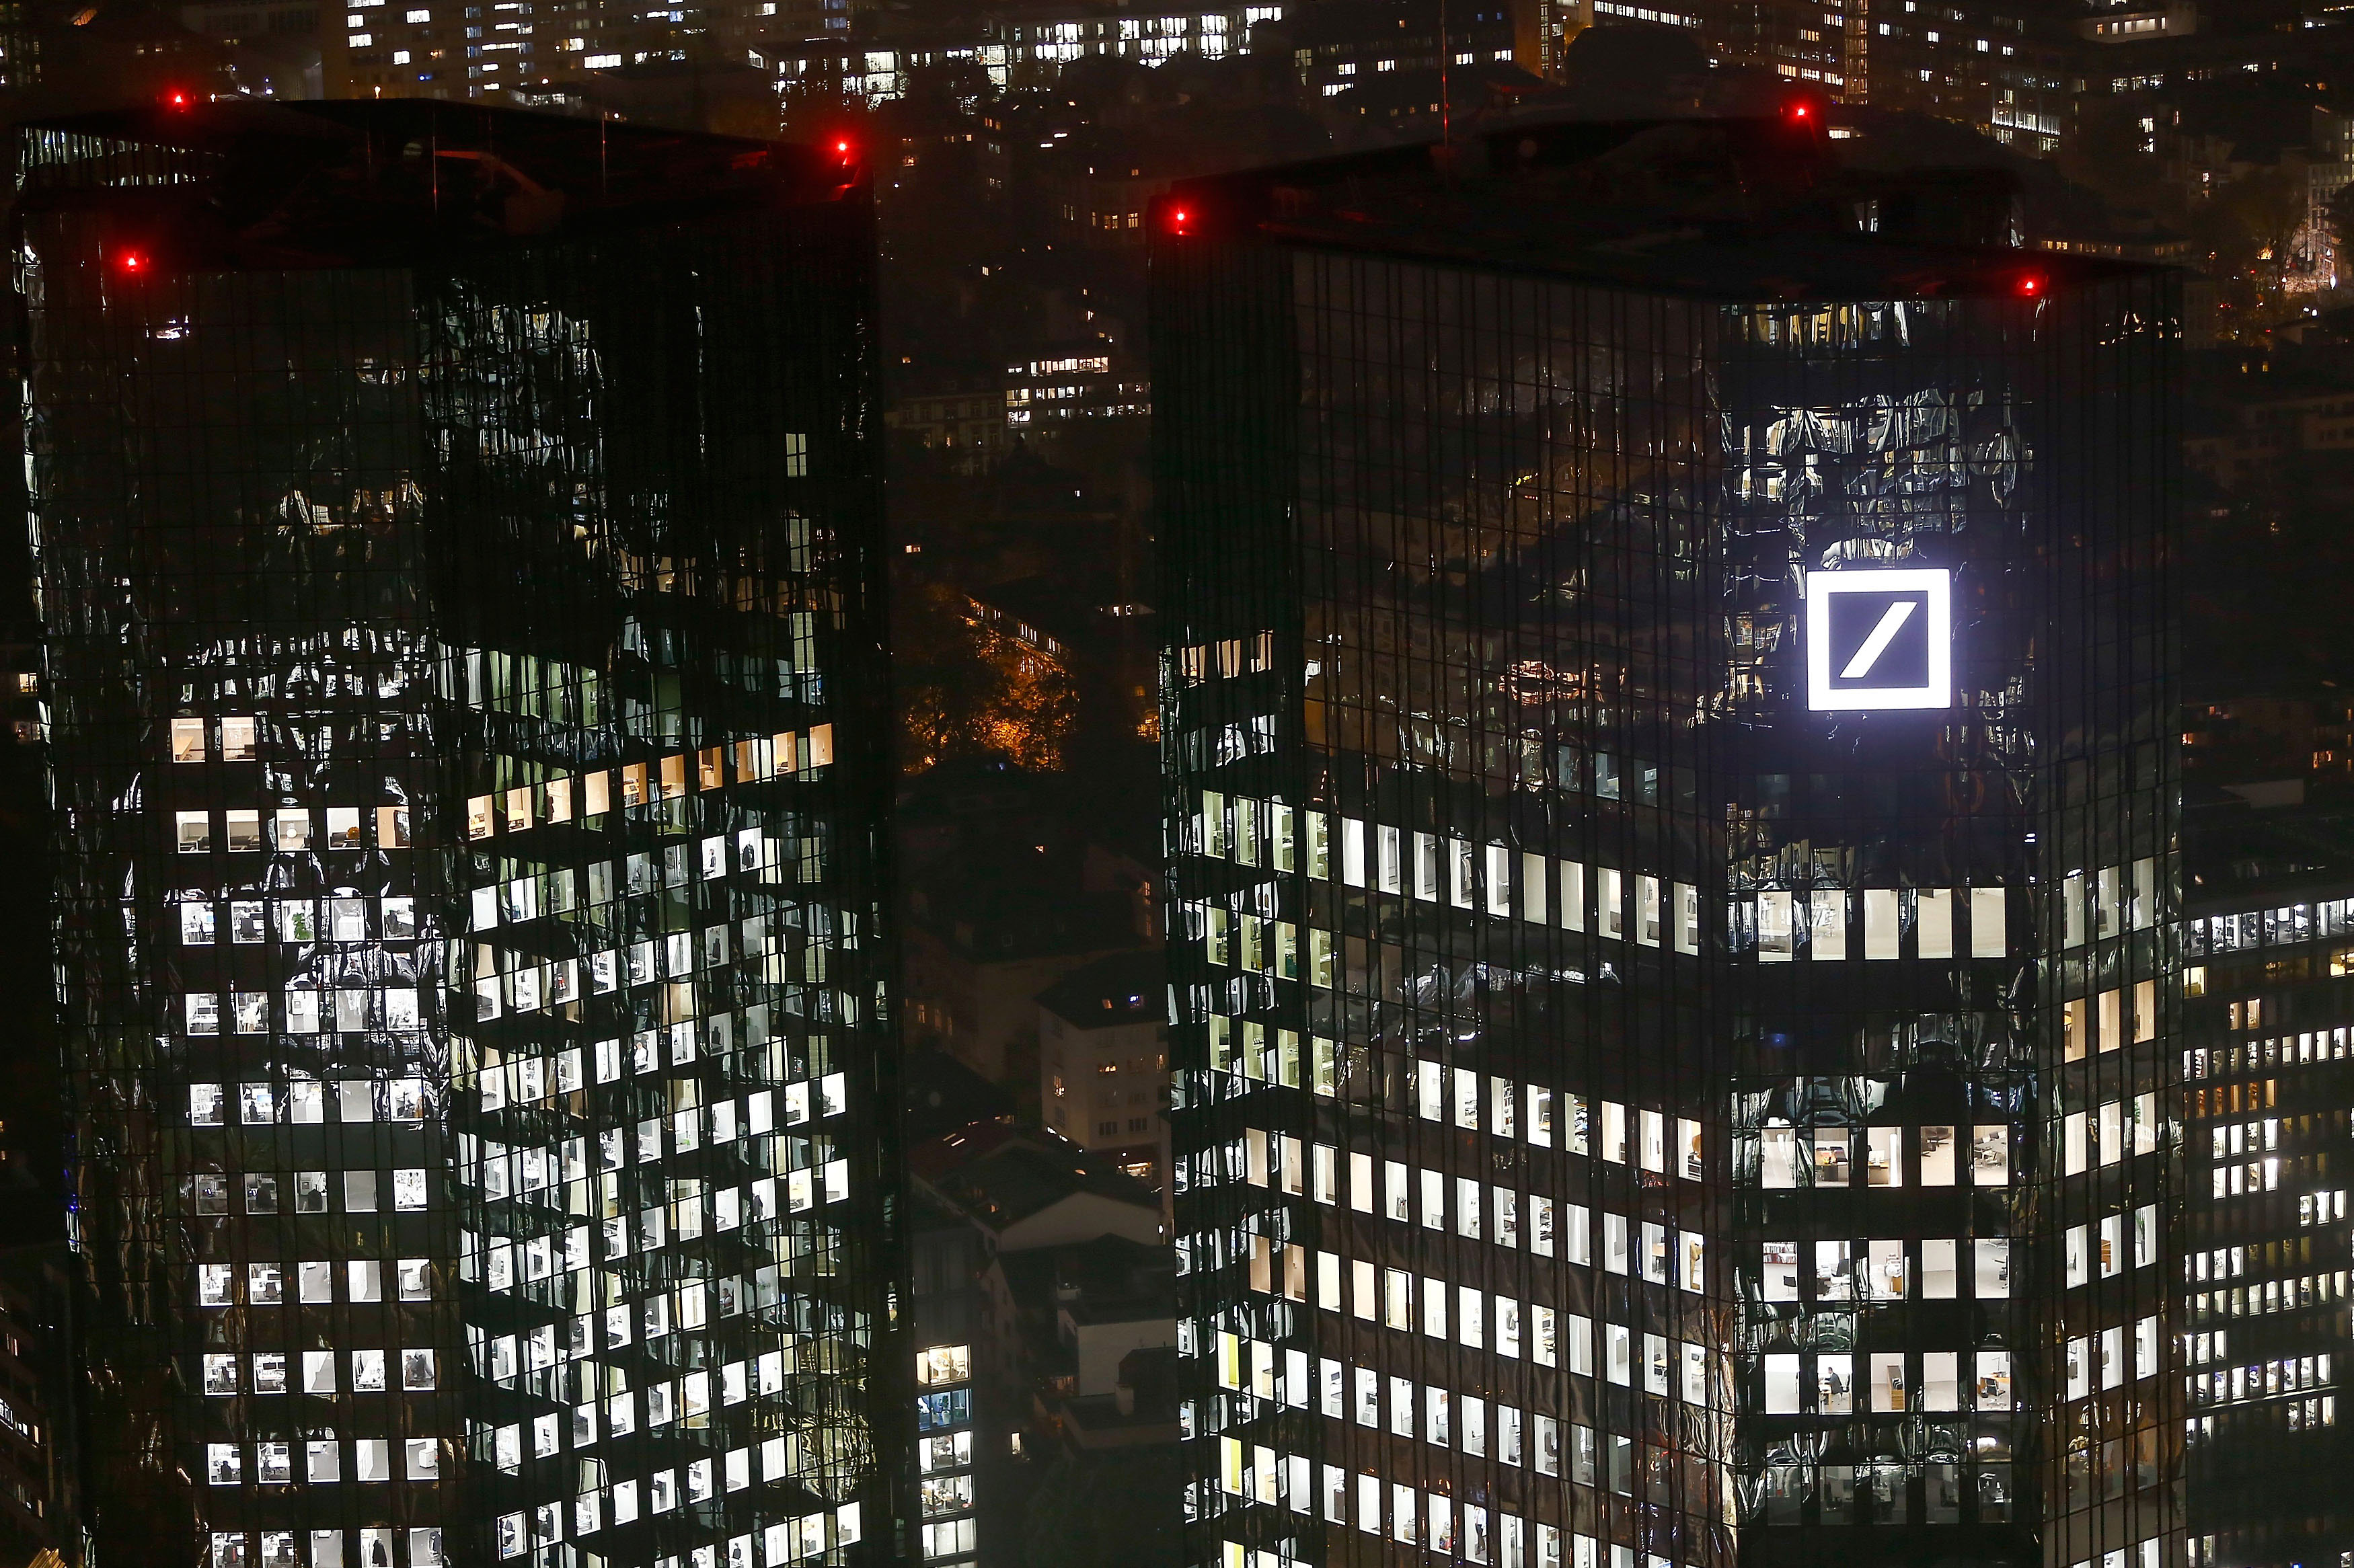 Deutsche Bank to shed one in three jobs, exit 10 countries